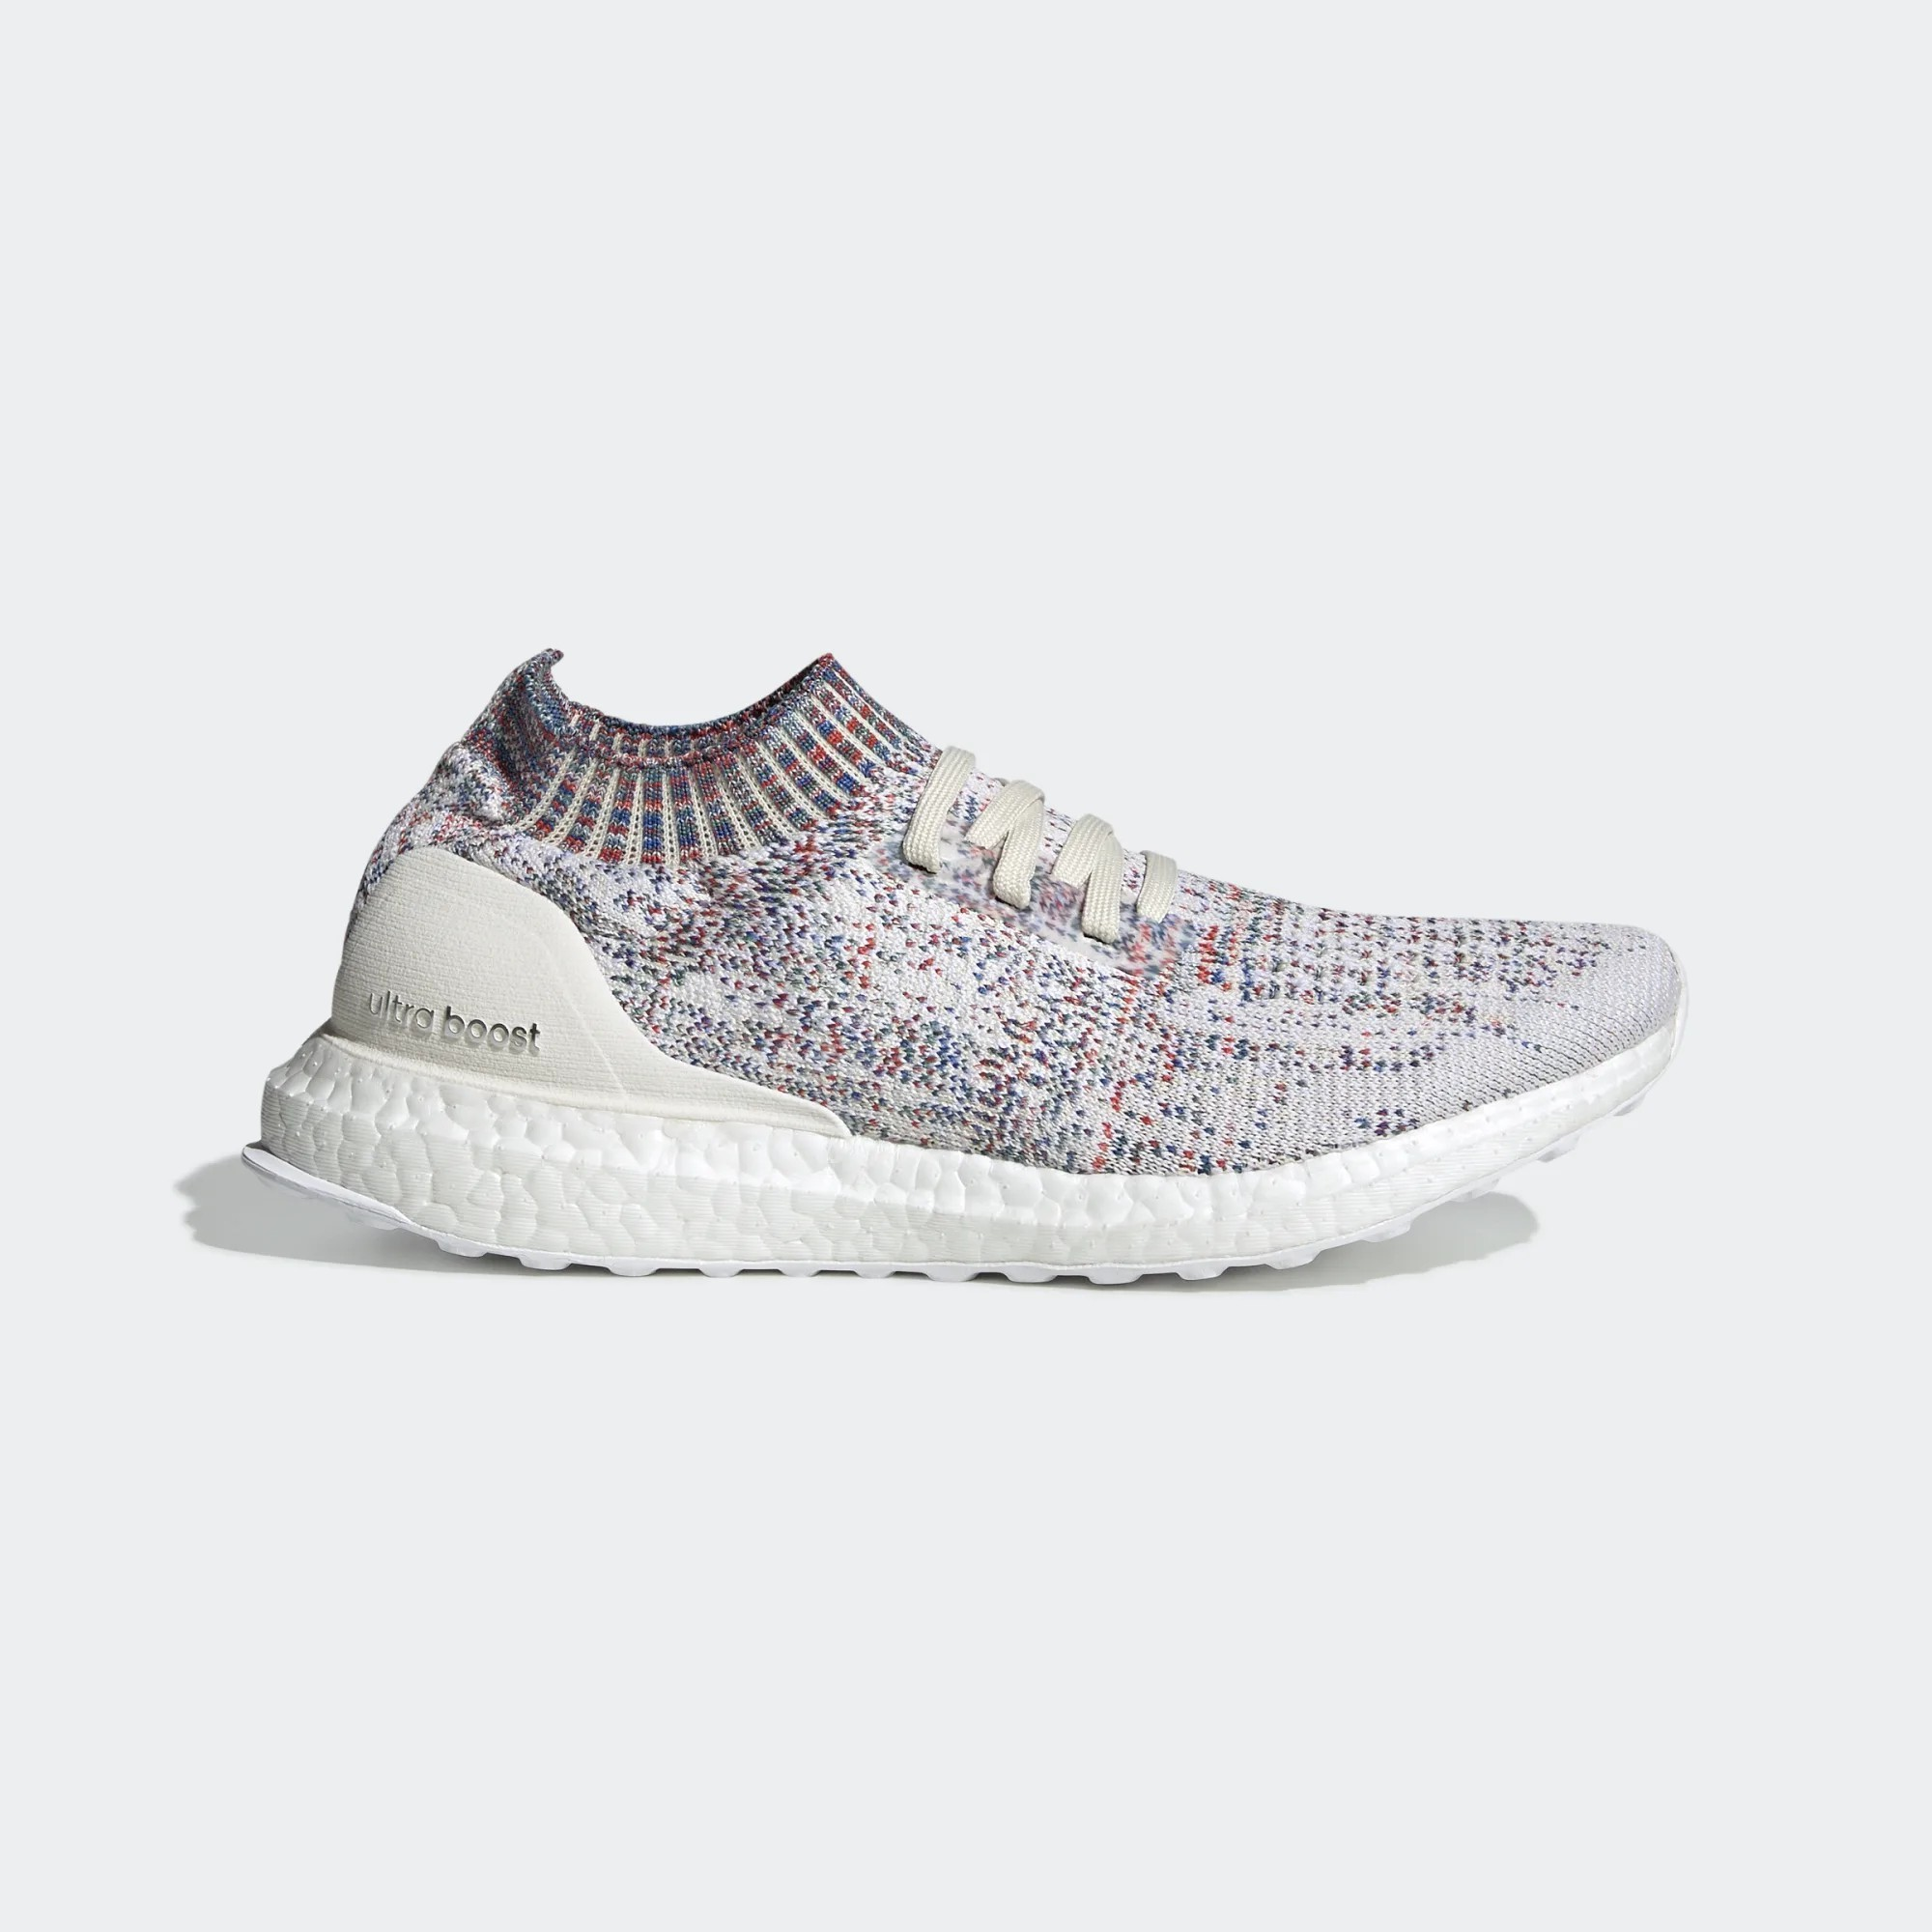 adidas Ultraboost Uncaged Chaussures Blanche B75860